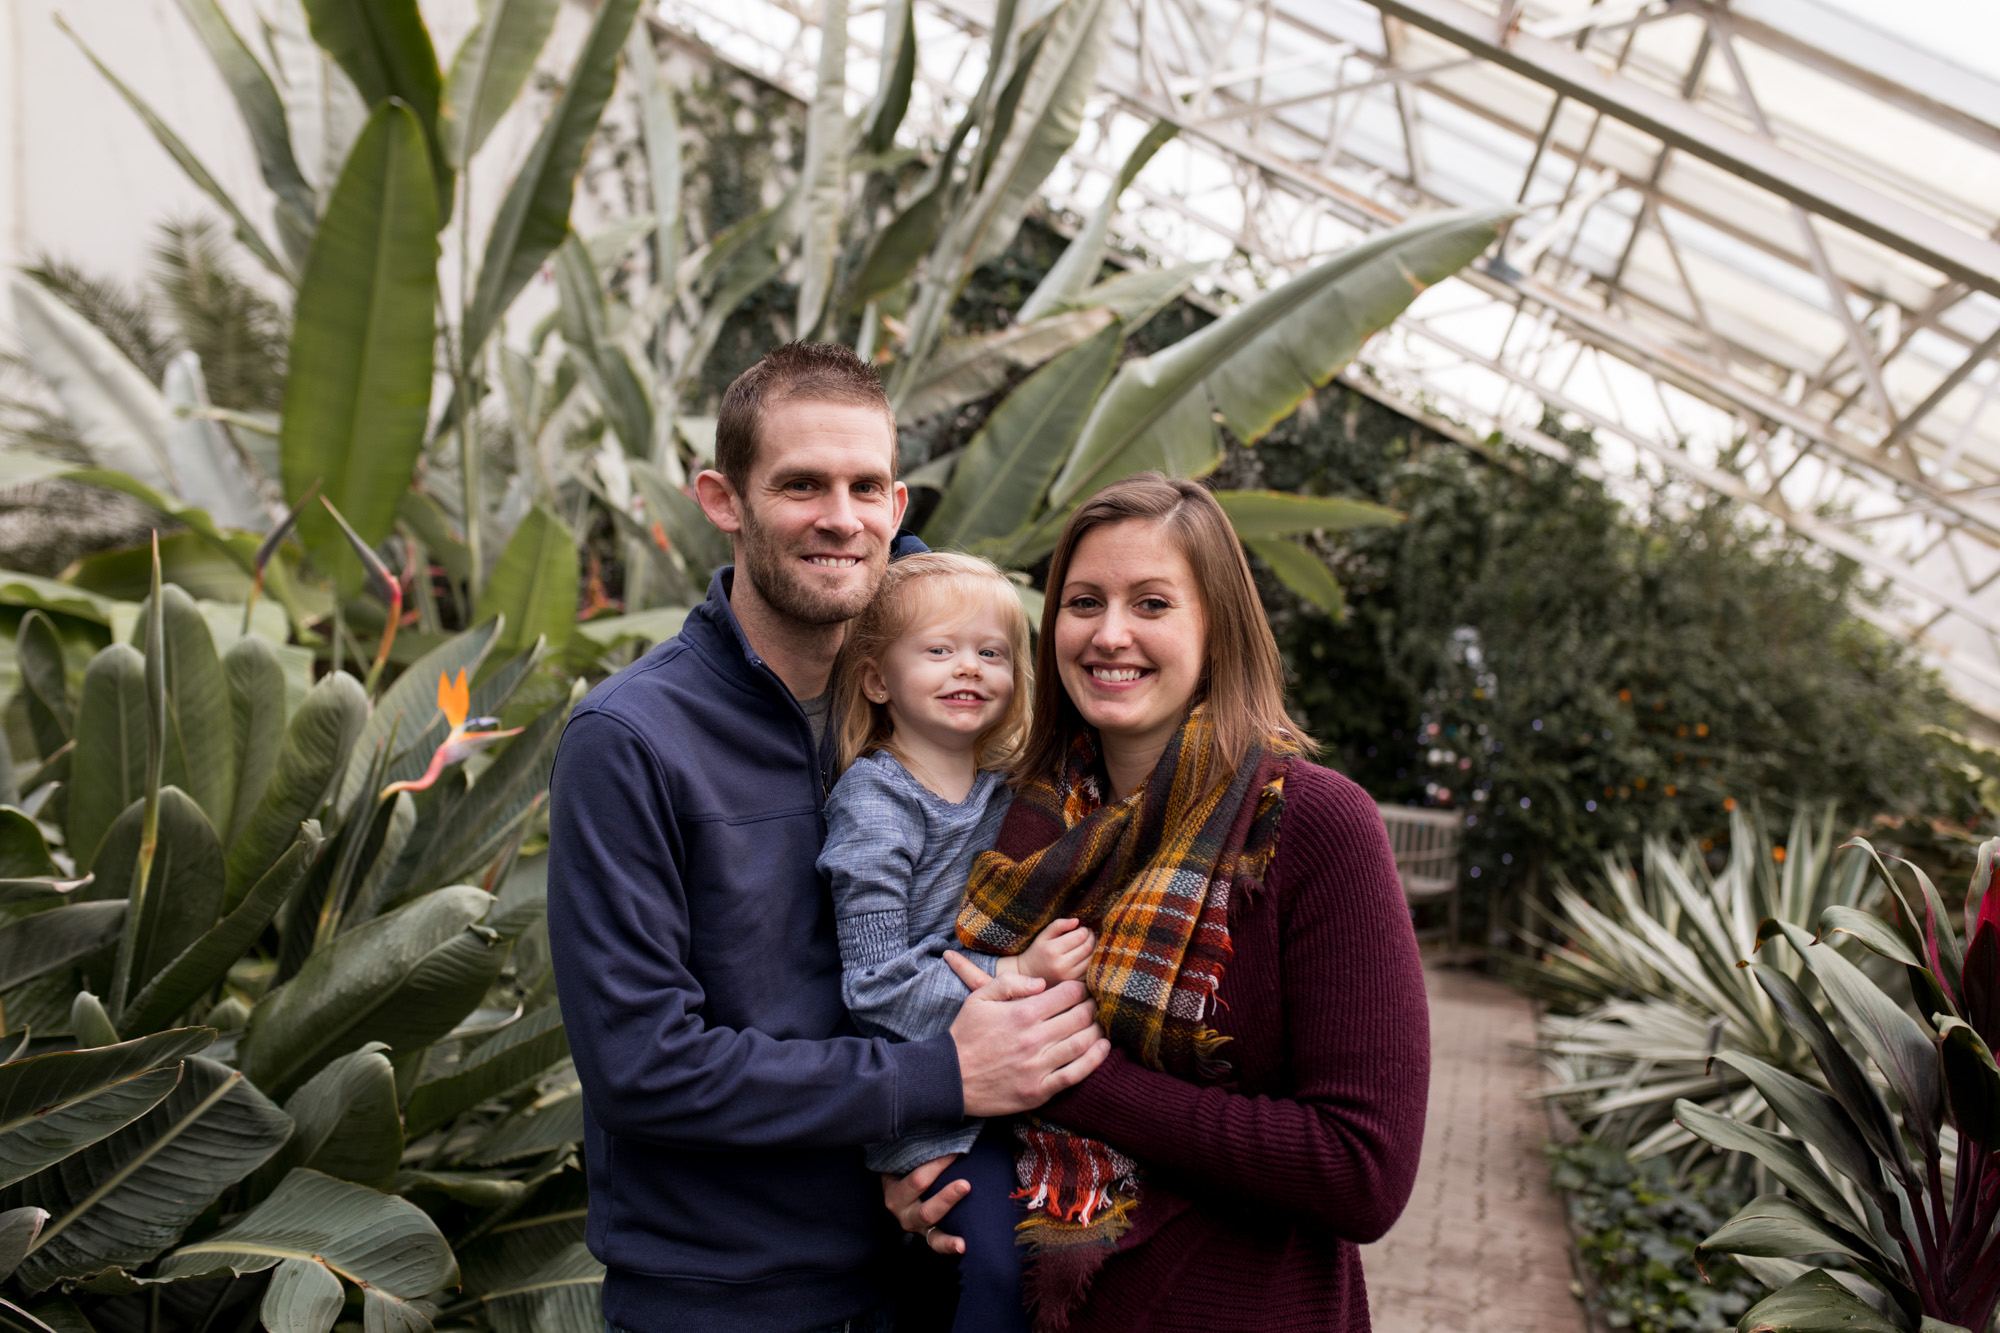 mom, dad, and daughter during Foellinger-Freimann Botanical Conservatory family session in Fort Wayne